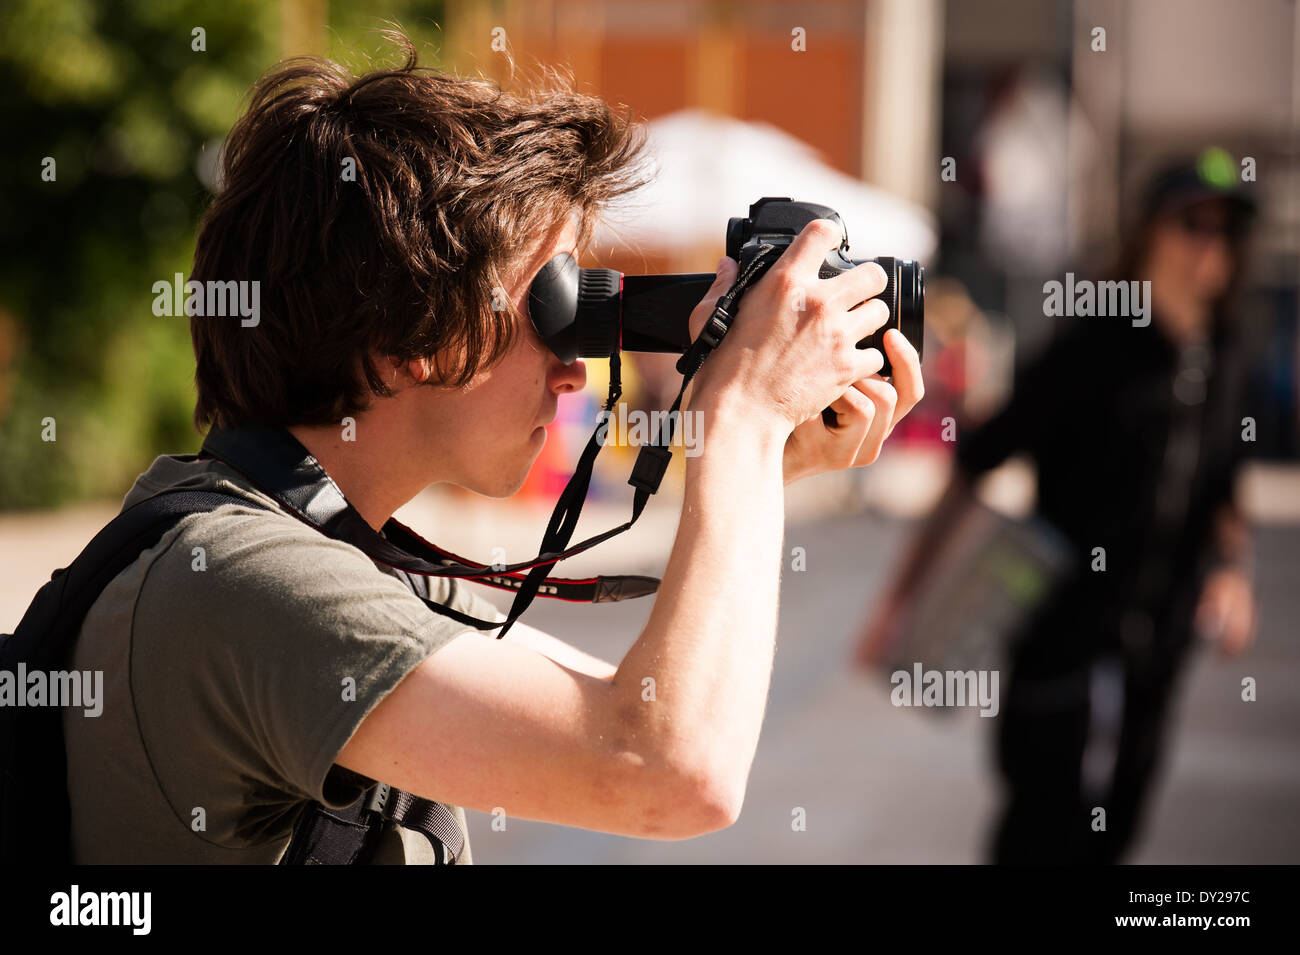 Man filming with a Canon DSLR camera, with his head close to the eye loupe - Stock Image